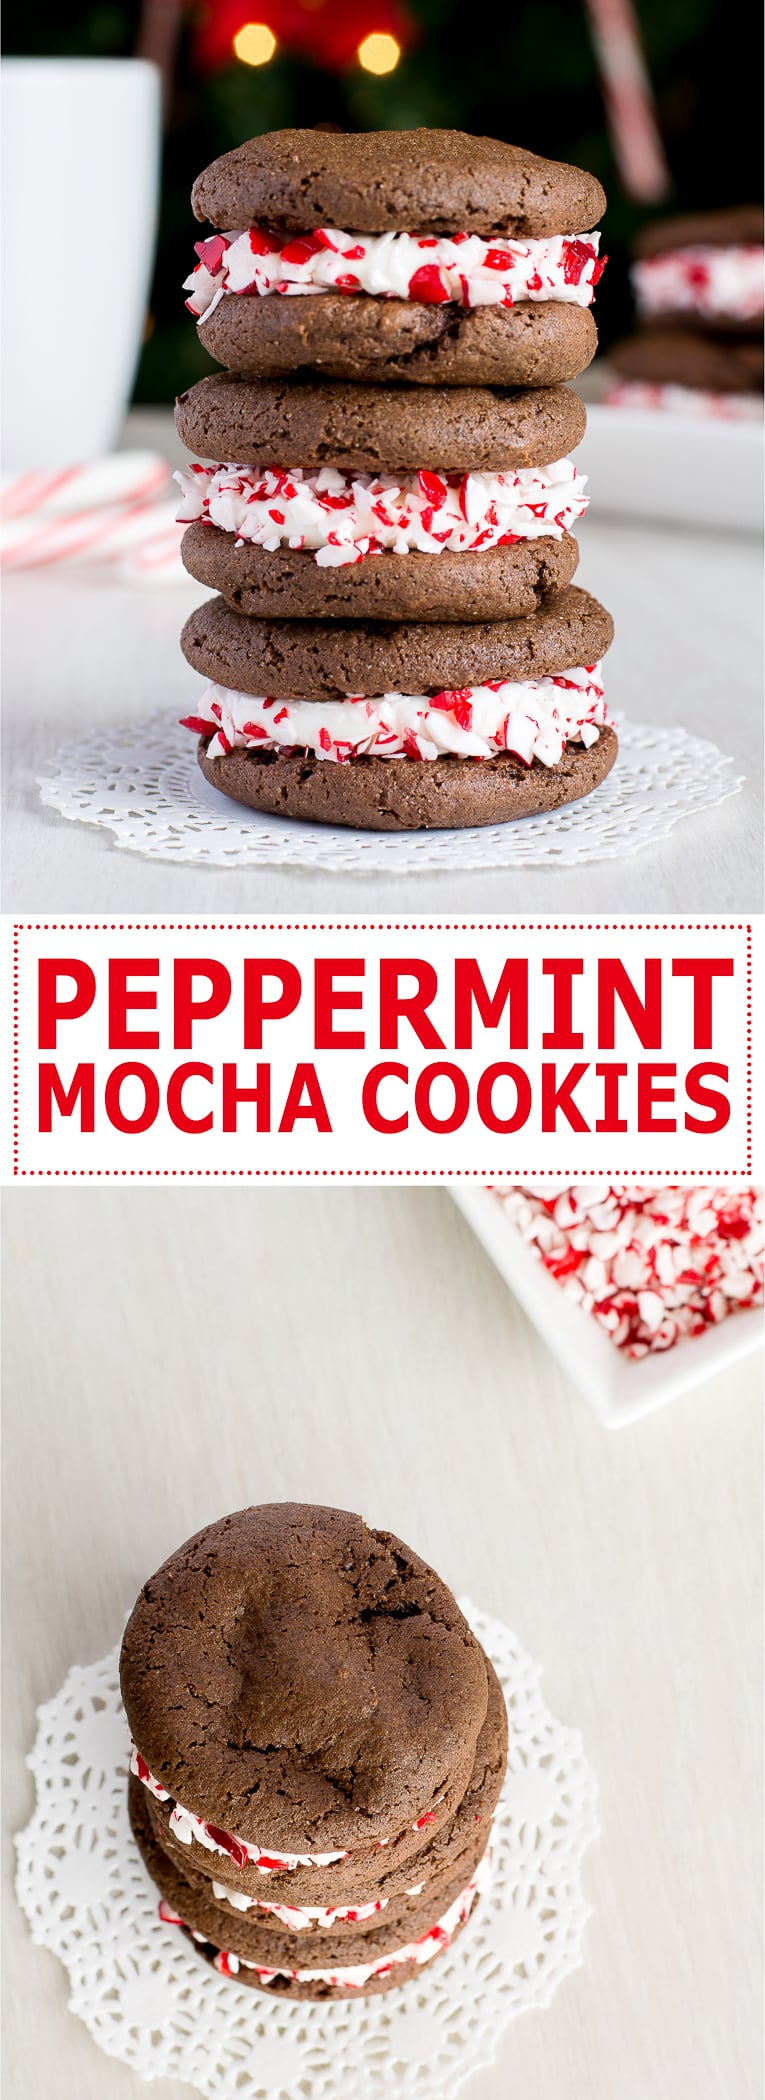 ... cookies filled with peppermint cream cheese frosting! | Kitchen Gidget